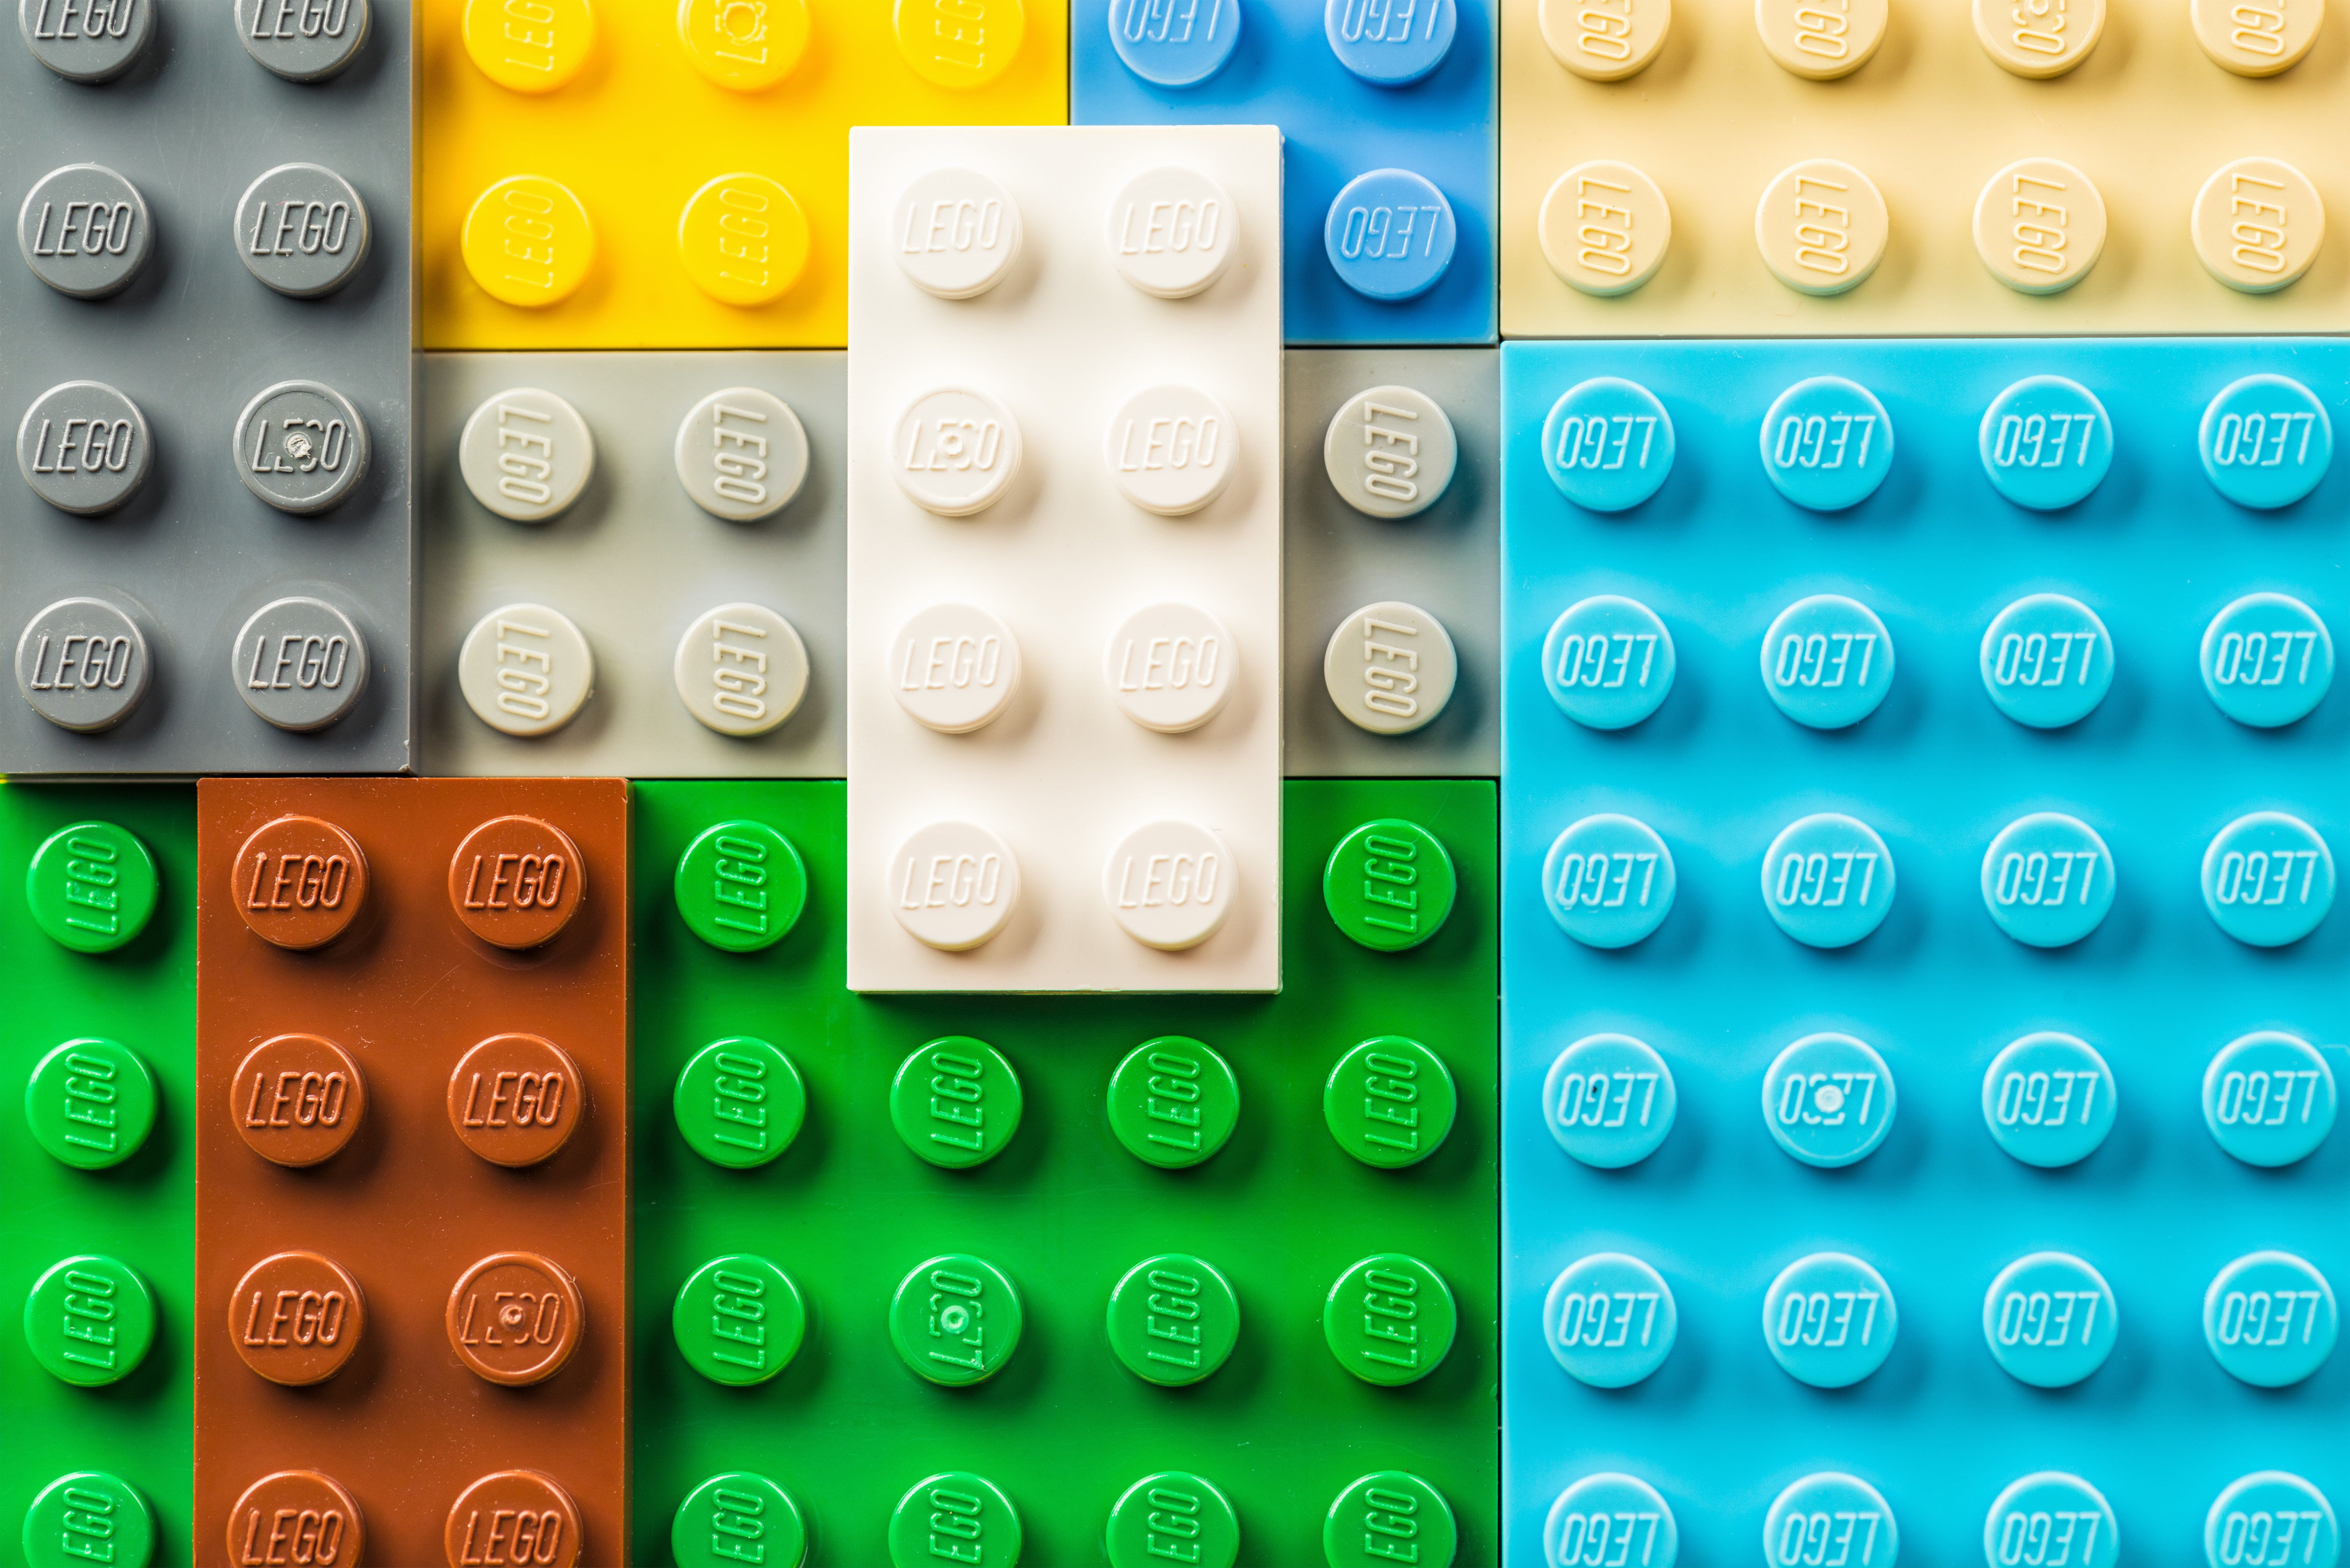 """The meaning behind the word """"Lego"""" makes so much sense."""